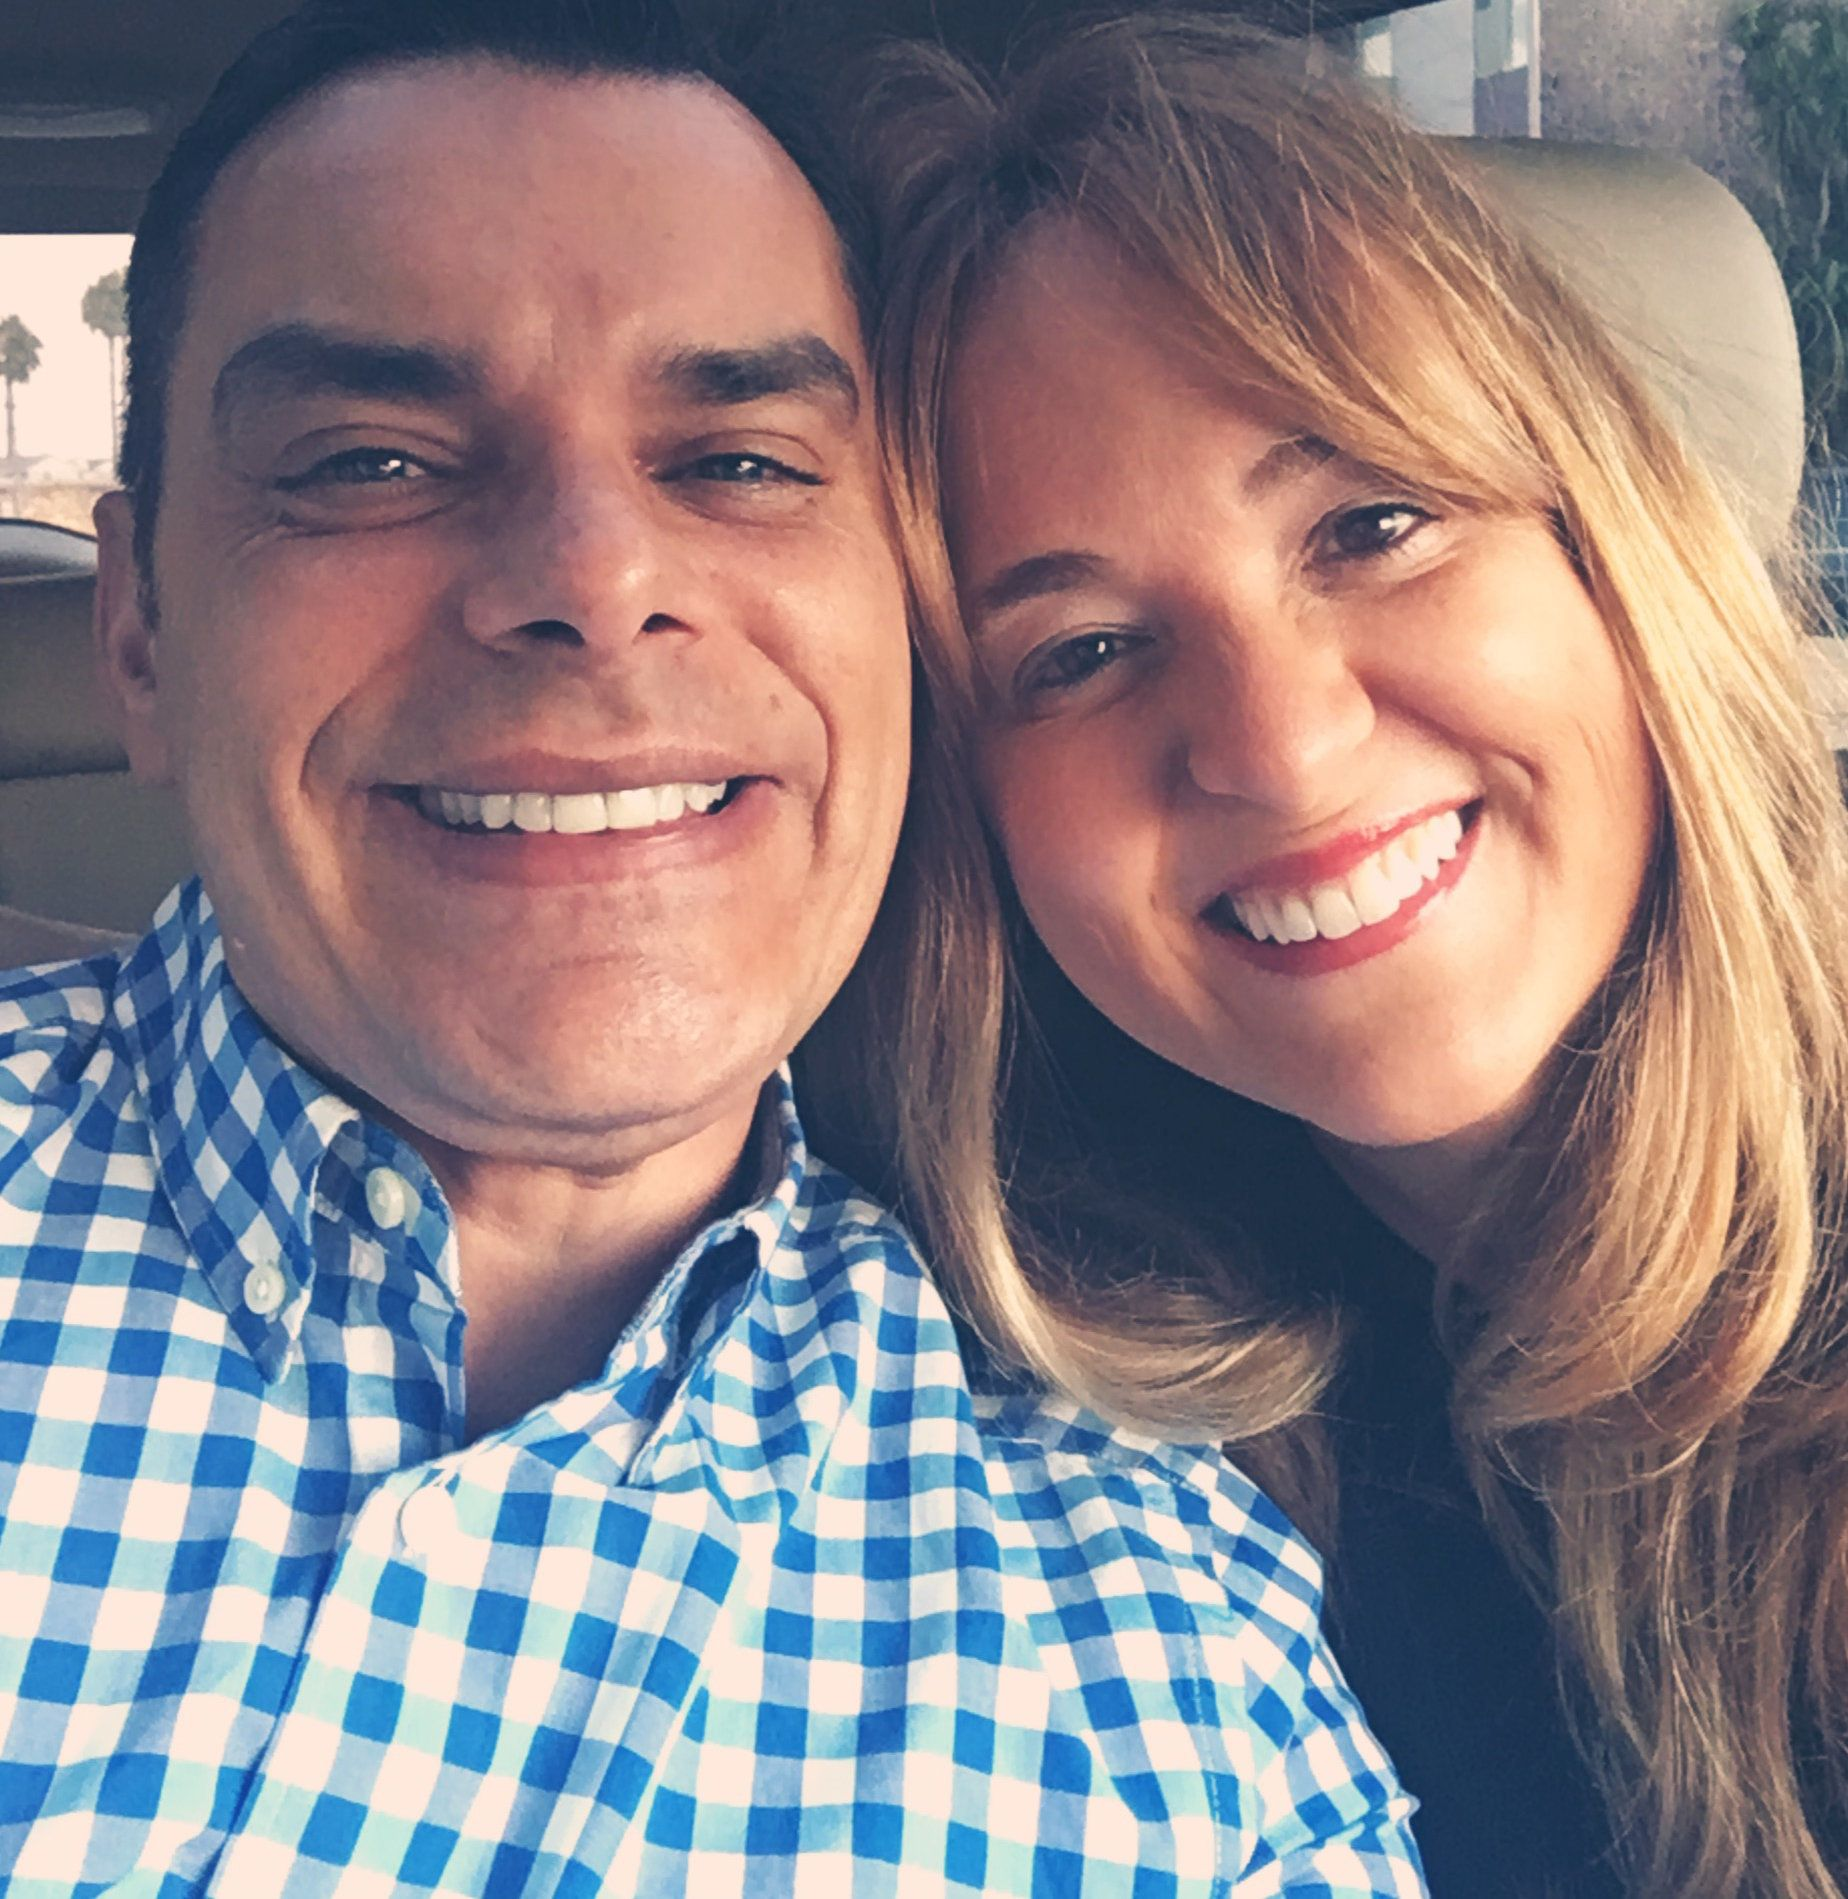 After three failed in-vitro fertilization treatments and a stalled adoption application, Rey Funes and Paula Campos plan to hire a gestational surrogate from Ukraine.